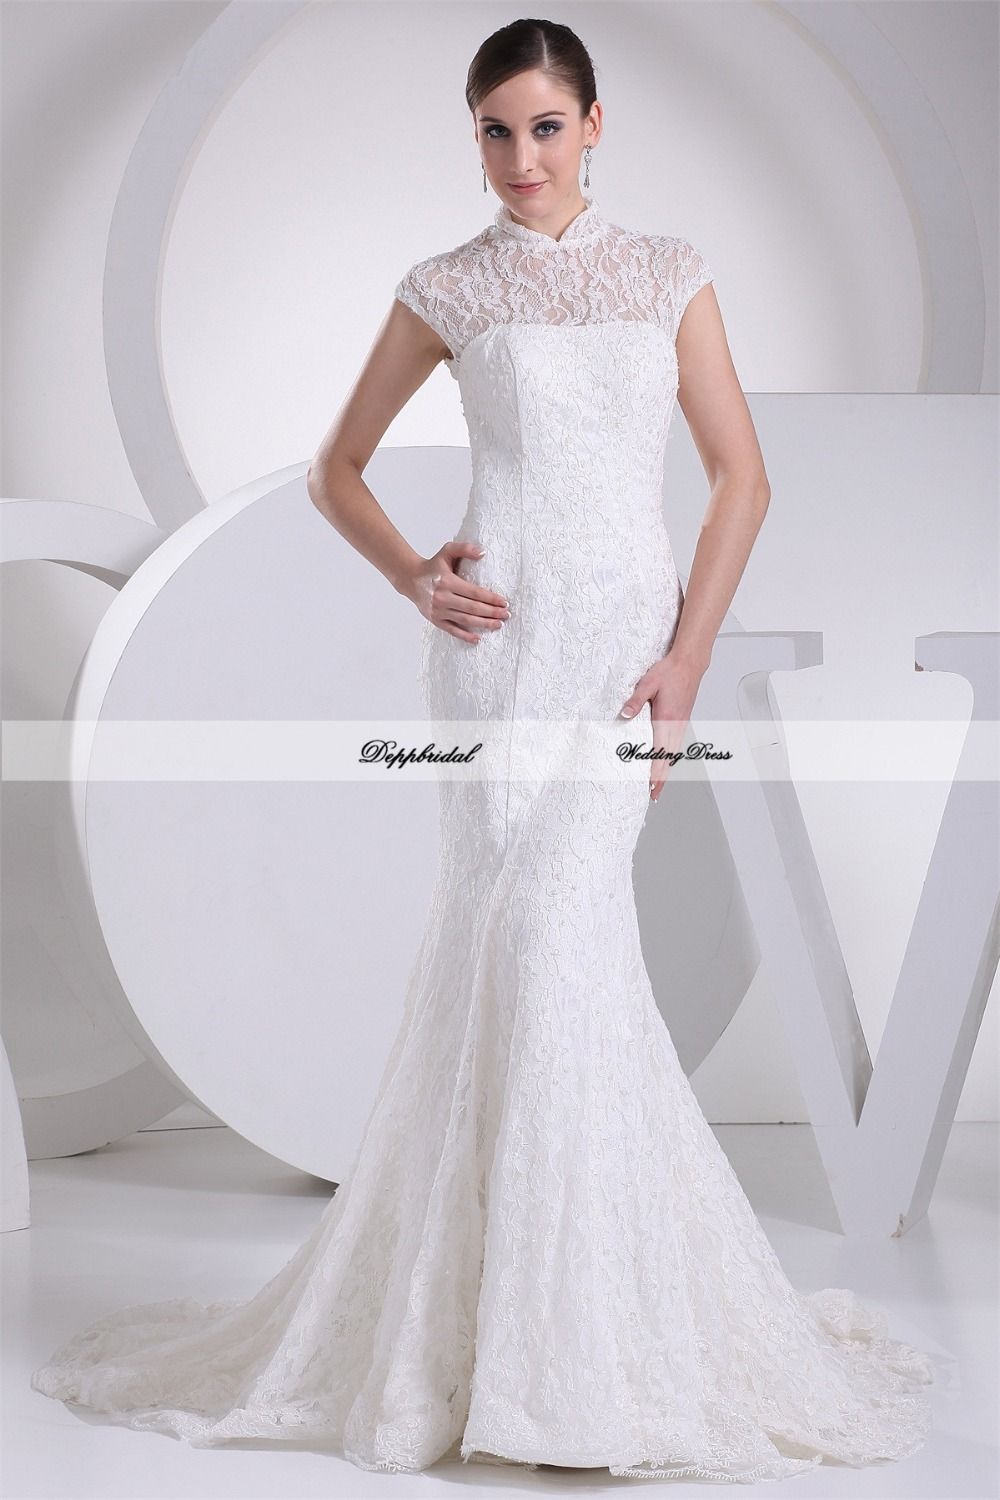 strapless ball gown with organza ruffle skirt ai p wedding dress no train Tea Length Dotted Organza Wedding Gown WG